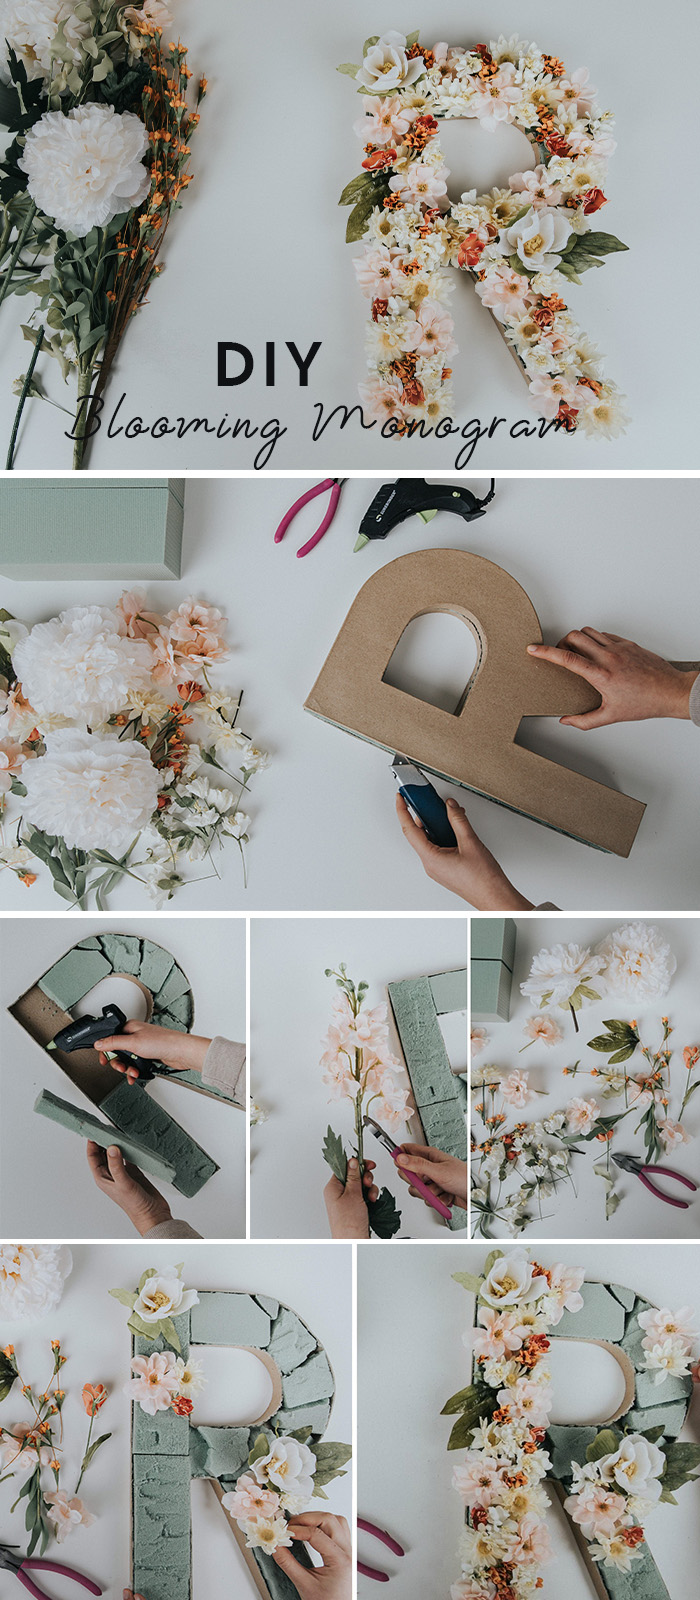 DIY blooming monogram letters for home and wedding decoration